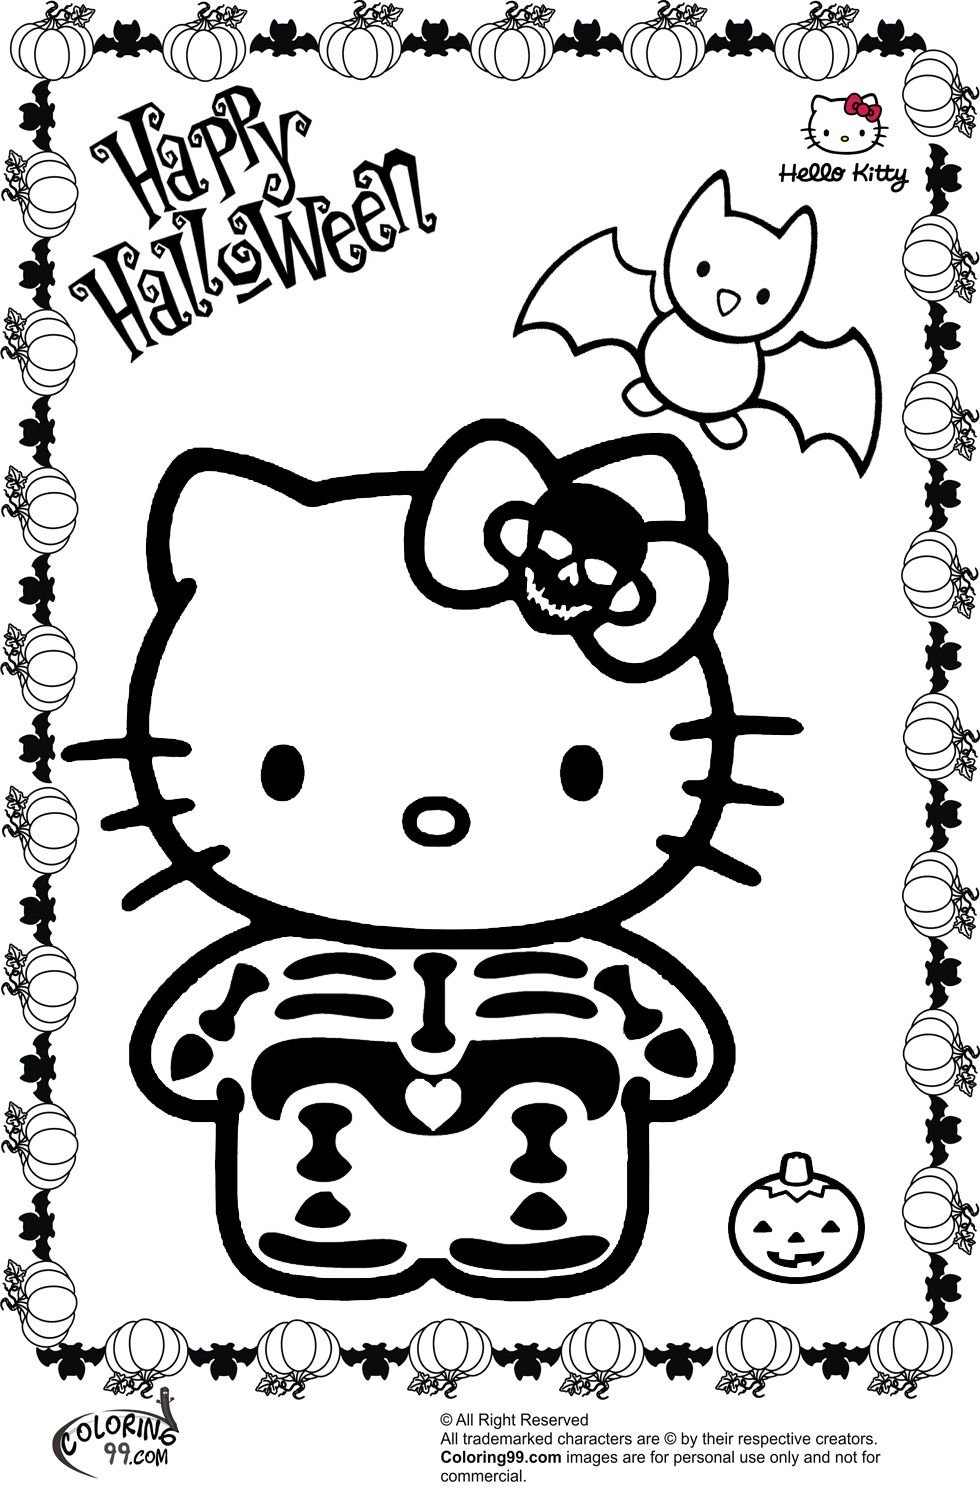 Kleurplaten Hello Kitty Halloween.Hello Kitty Halloween Skeleton Coloring Pages Kleurplaten